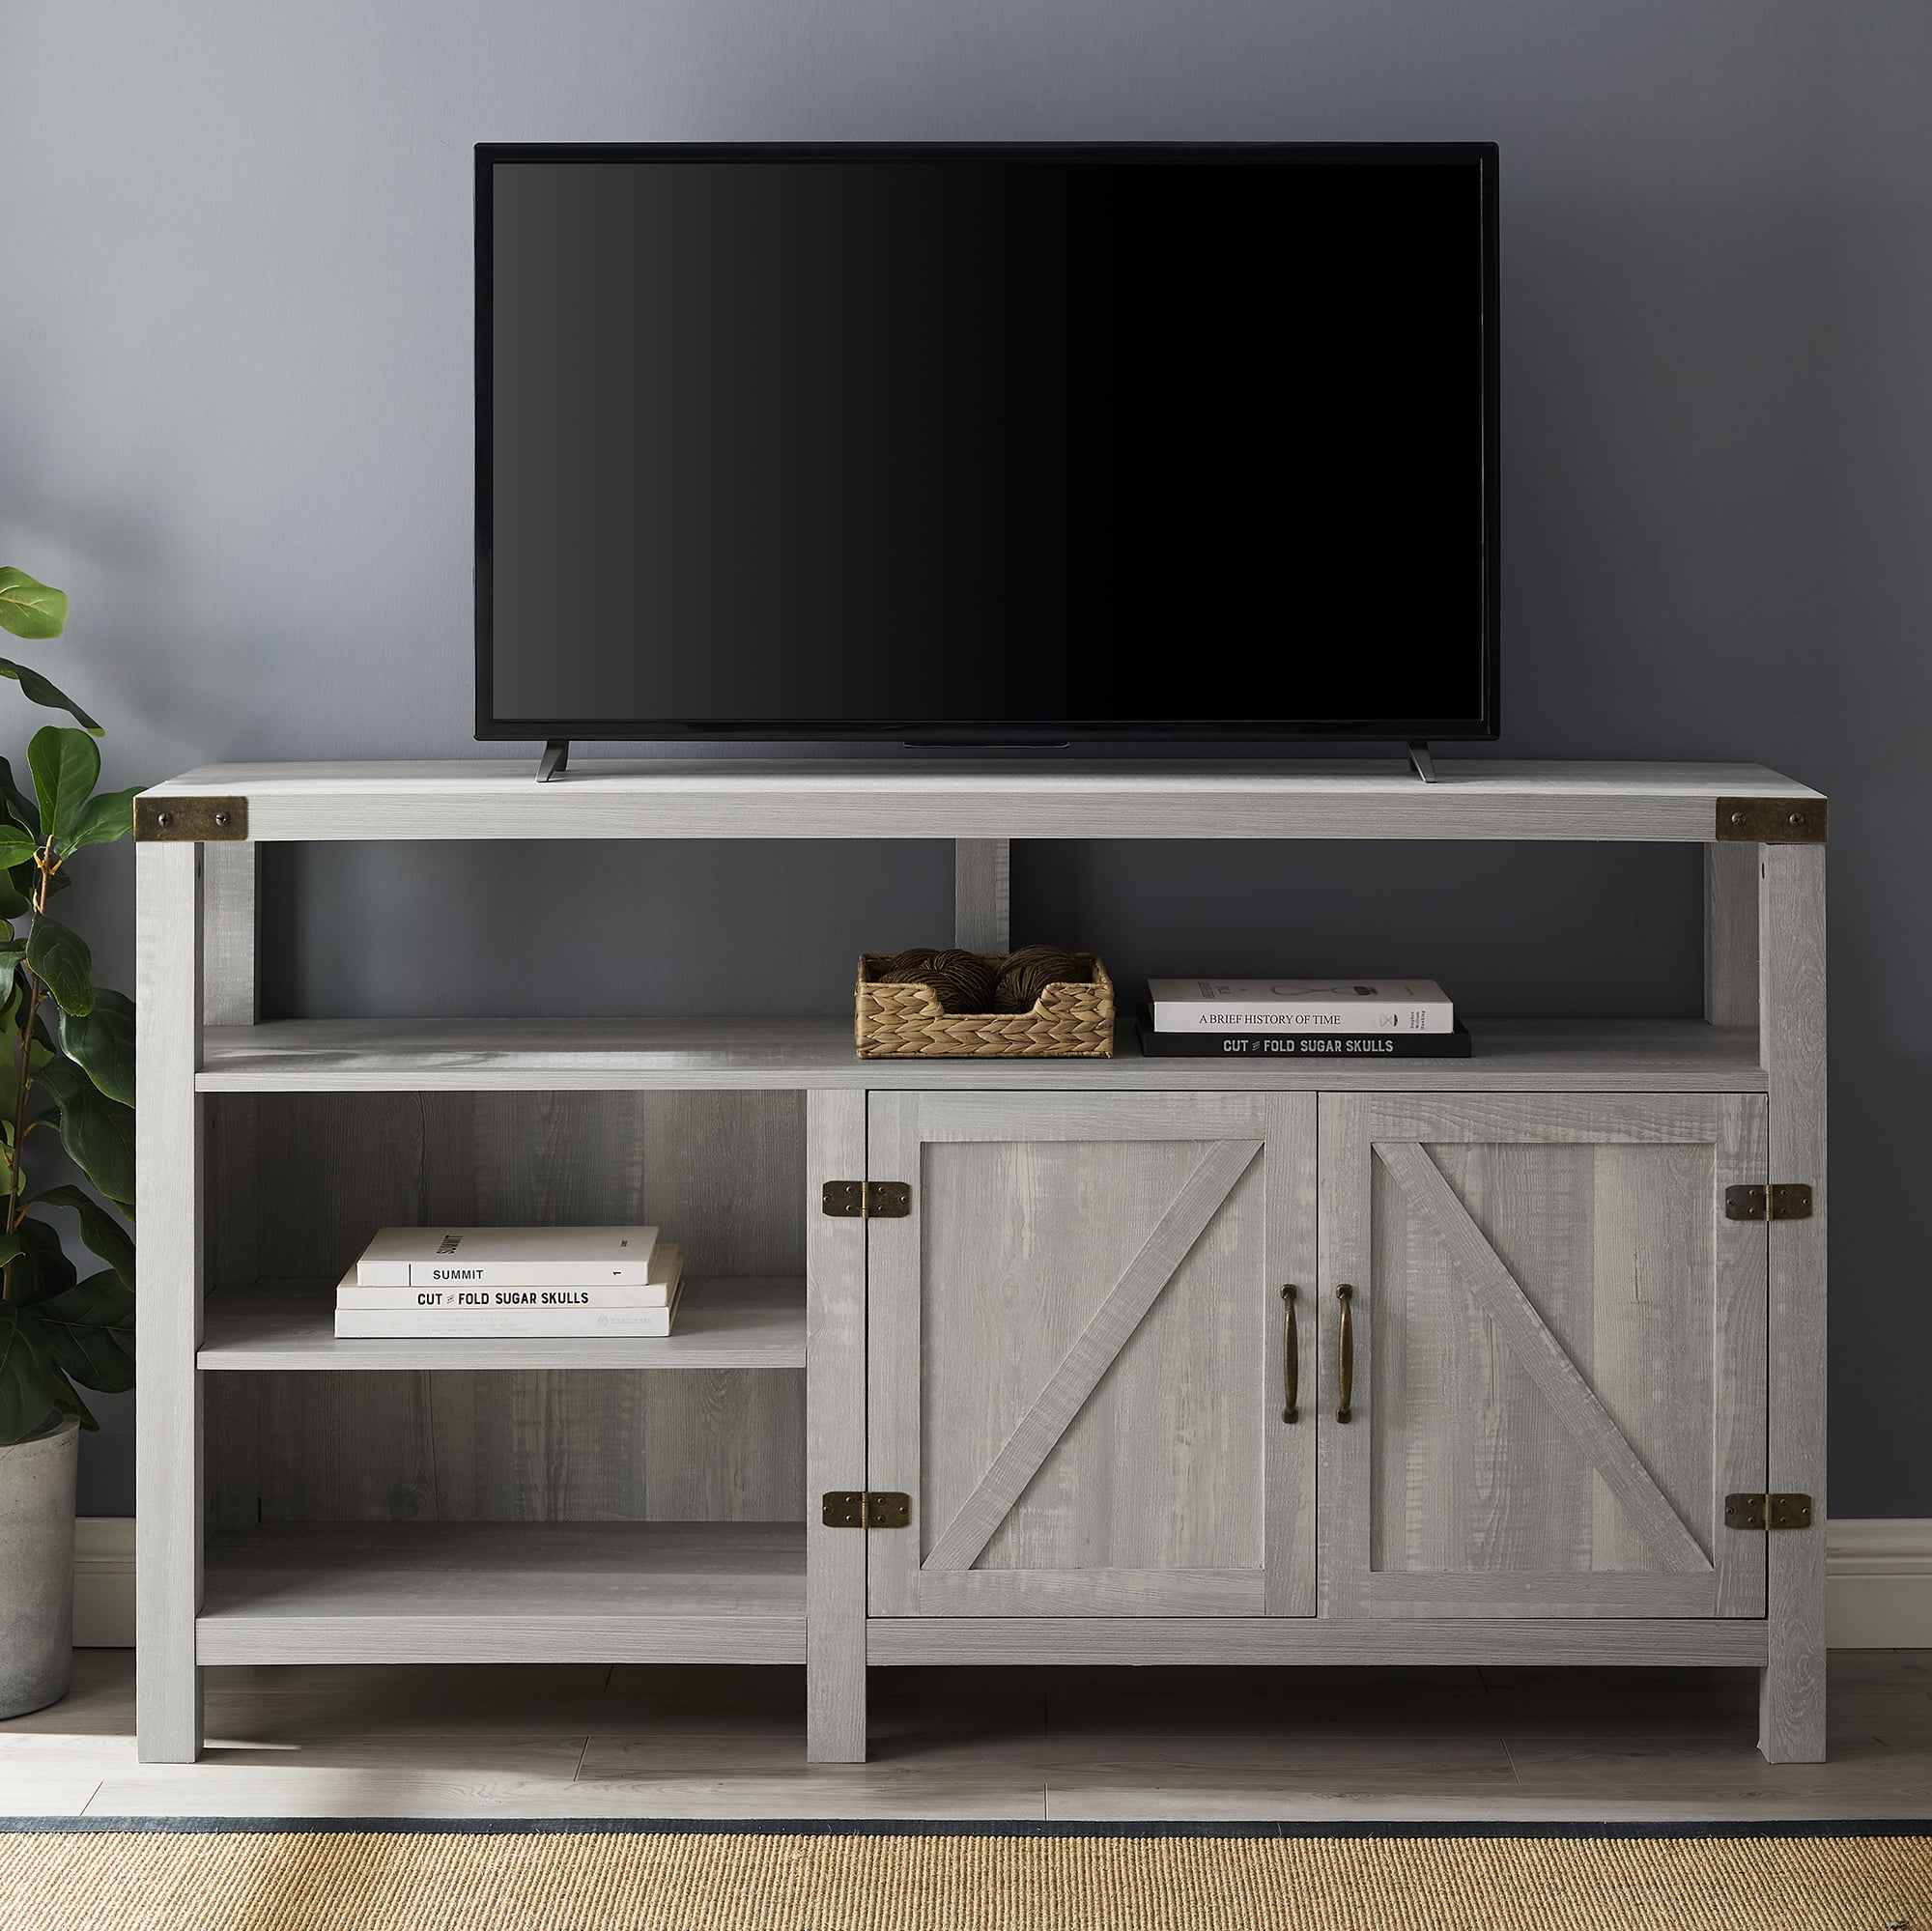 Manor Park Modern Farmhouse Oak Tv Stand For Tvs Up To 65 White Oak Walmart Com Walmart Com